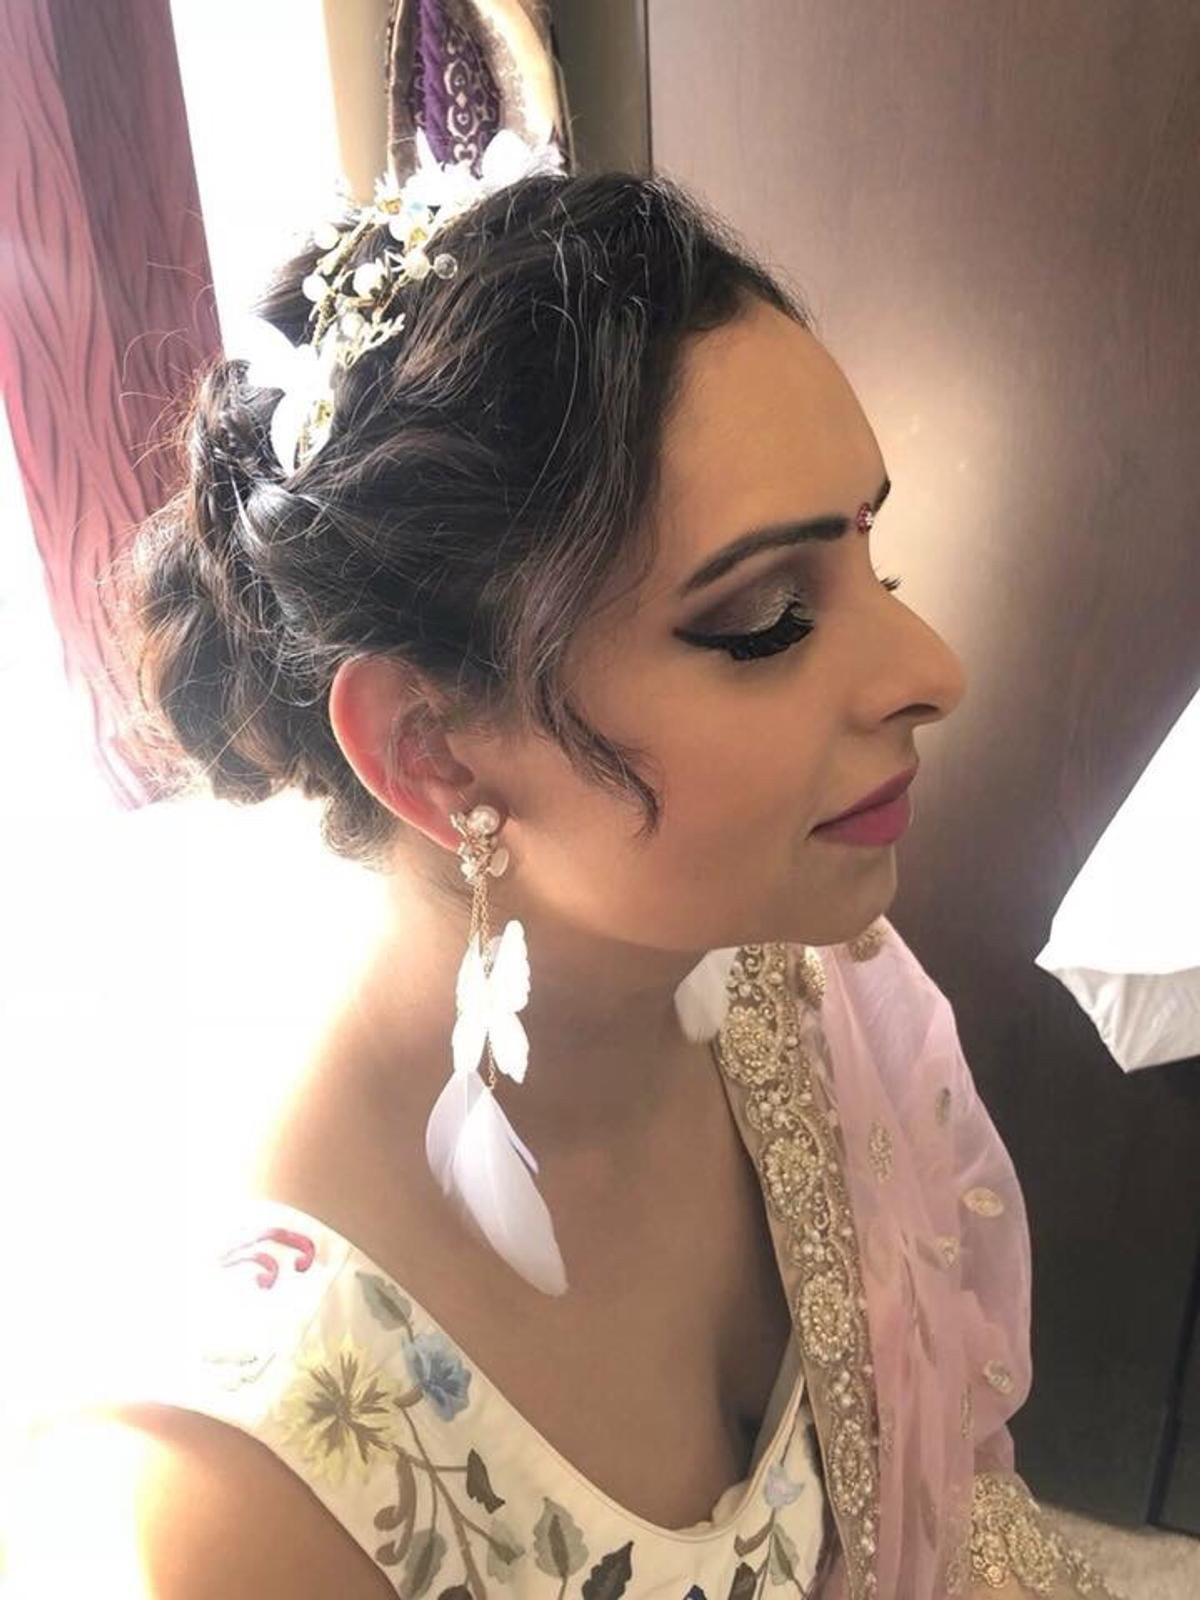 gurps ghotra hair & makeup stylist in wv2 wolverhampton for